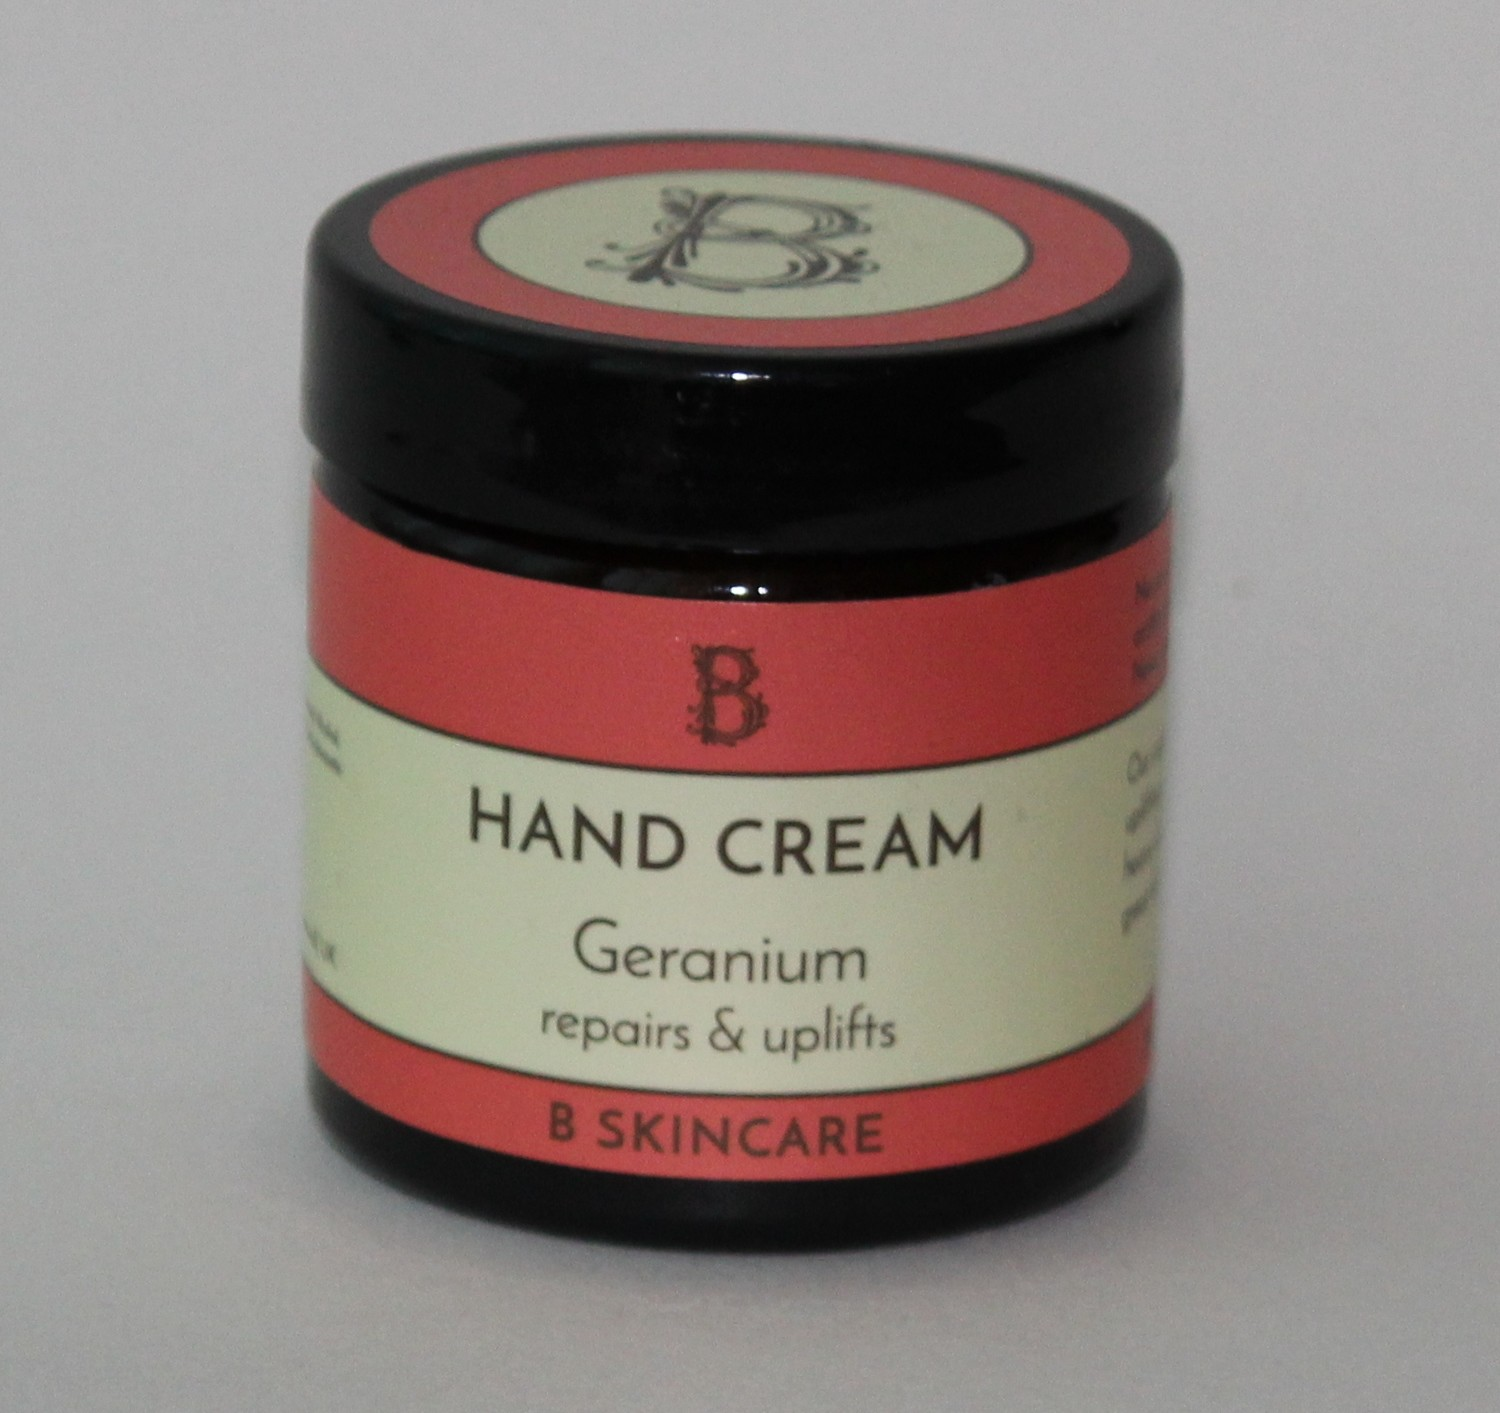 B Skincare Geranium hand and foot cream